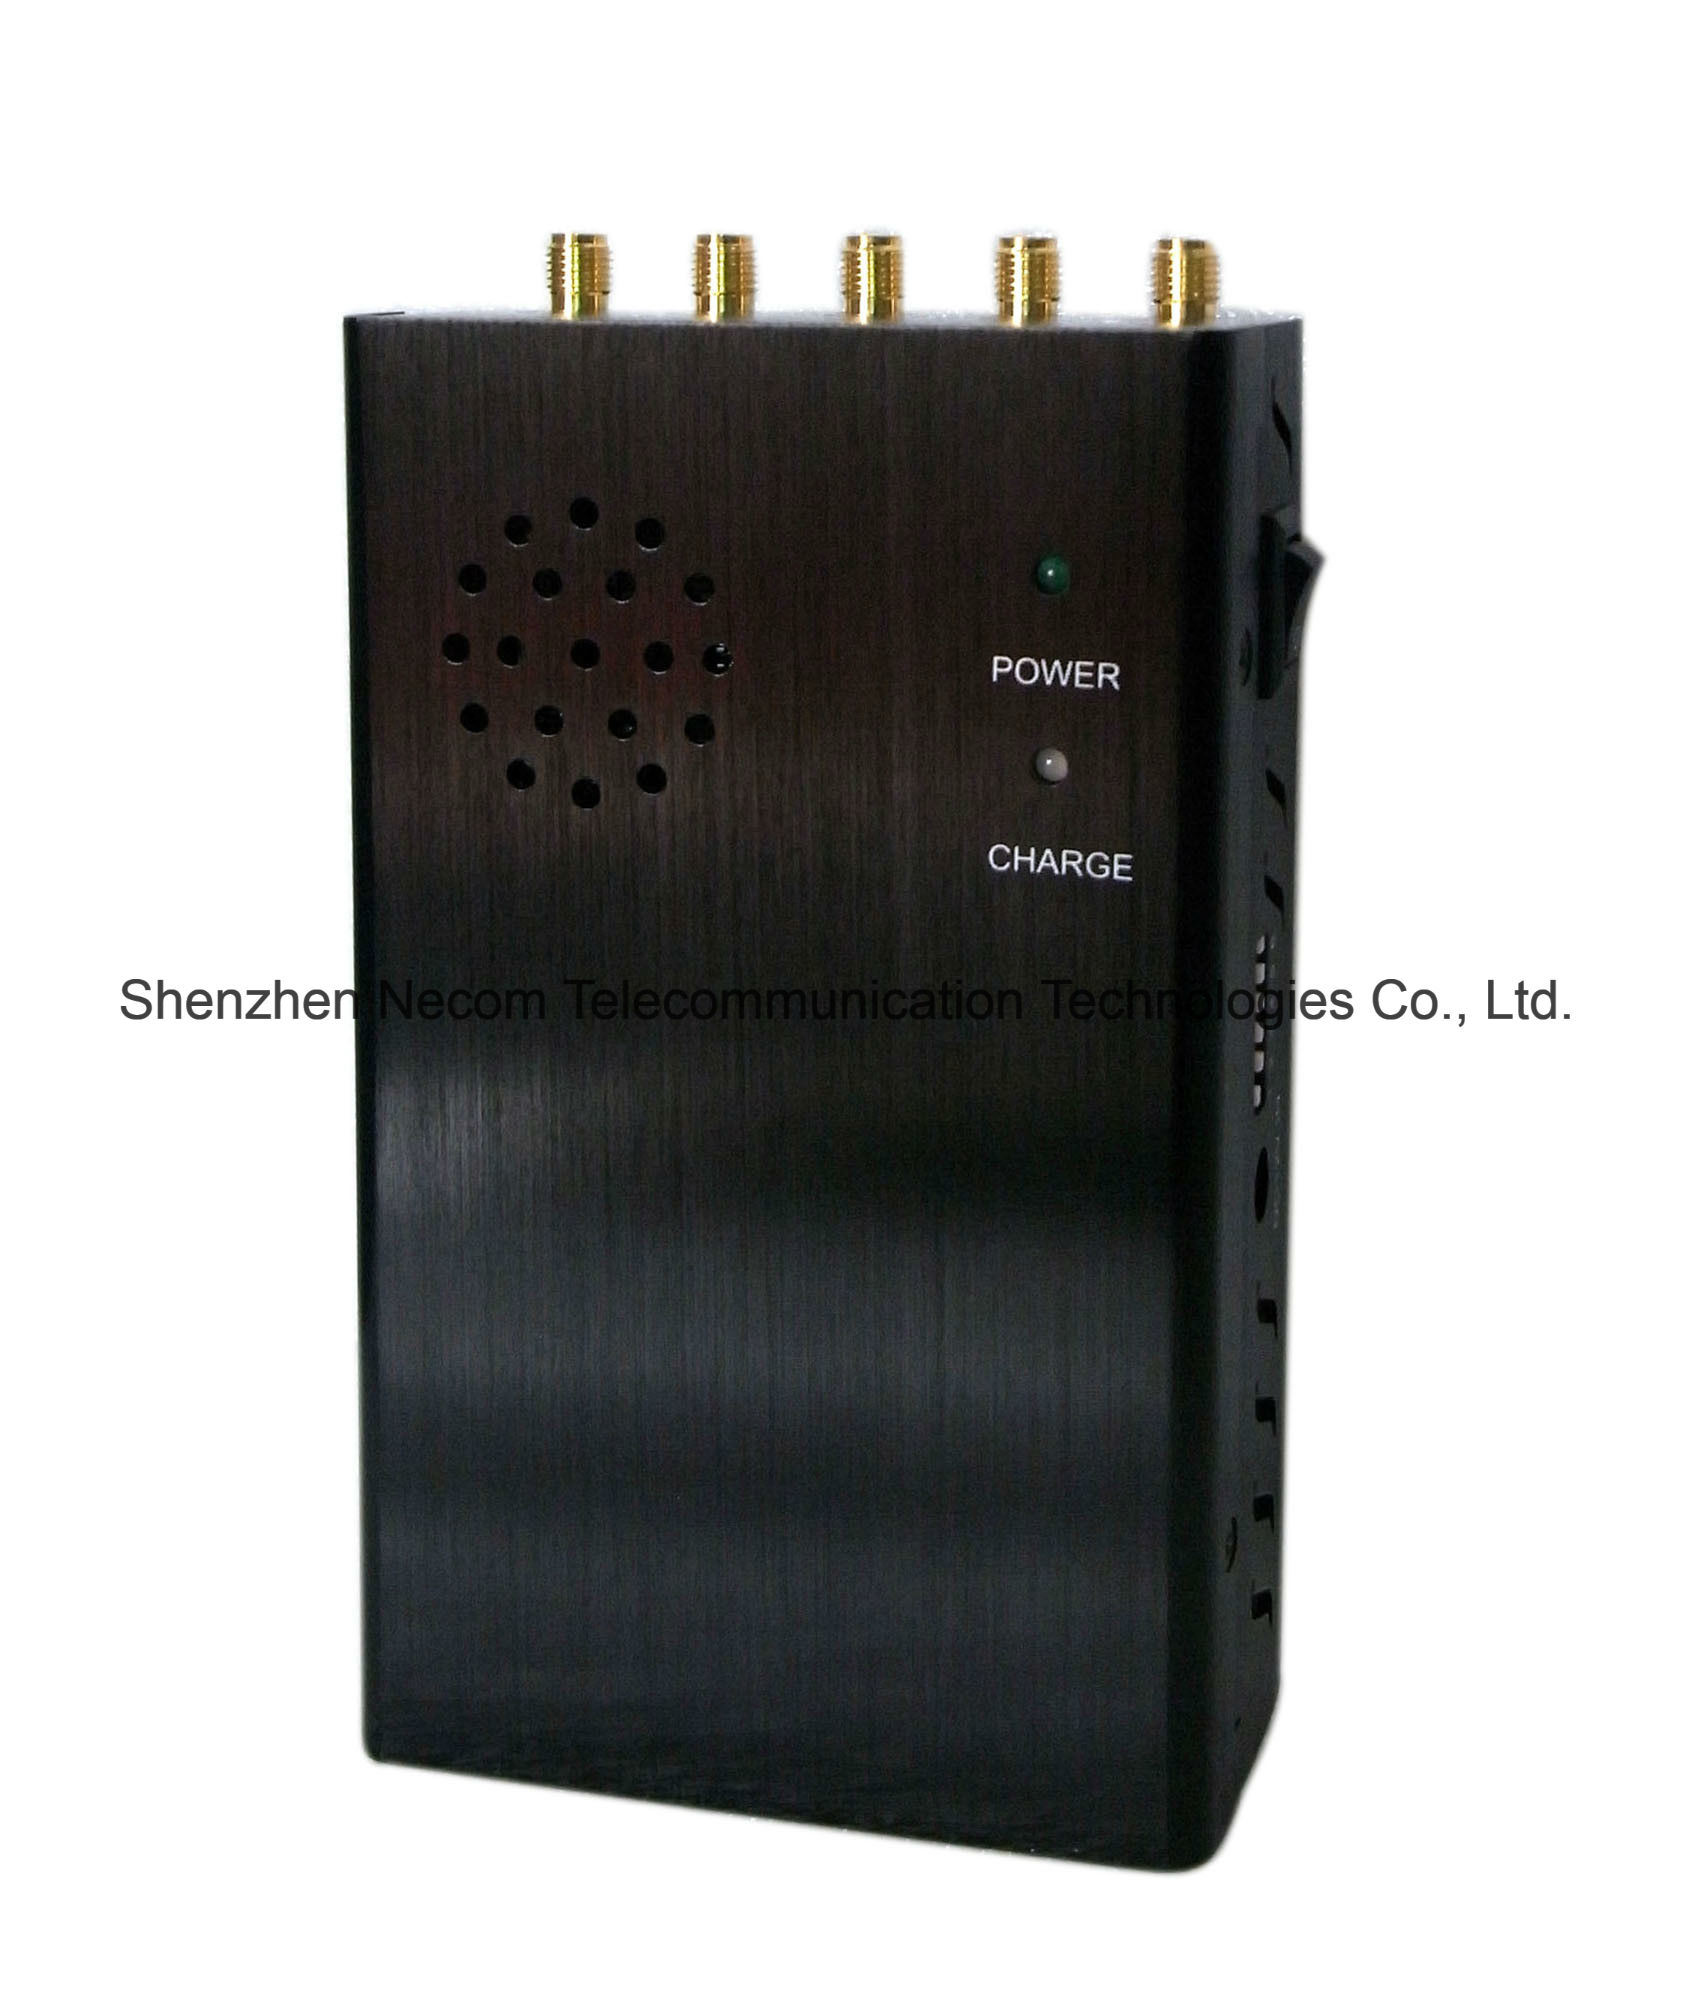 phone data jammer machine - China Wireless Signal Jammer with Good Quality&Favourable Price Jamming for Wired Camera, GPS Tracker, Mobile Phones, GSM Jammer/GPS Jammer /Cell Phone Jammer - China 5 Band Signal Blockers, Five Antennas Jammers